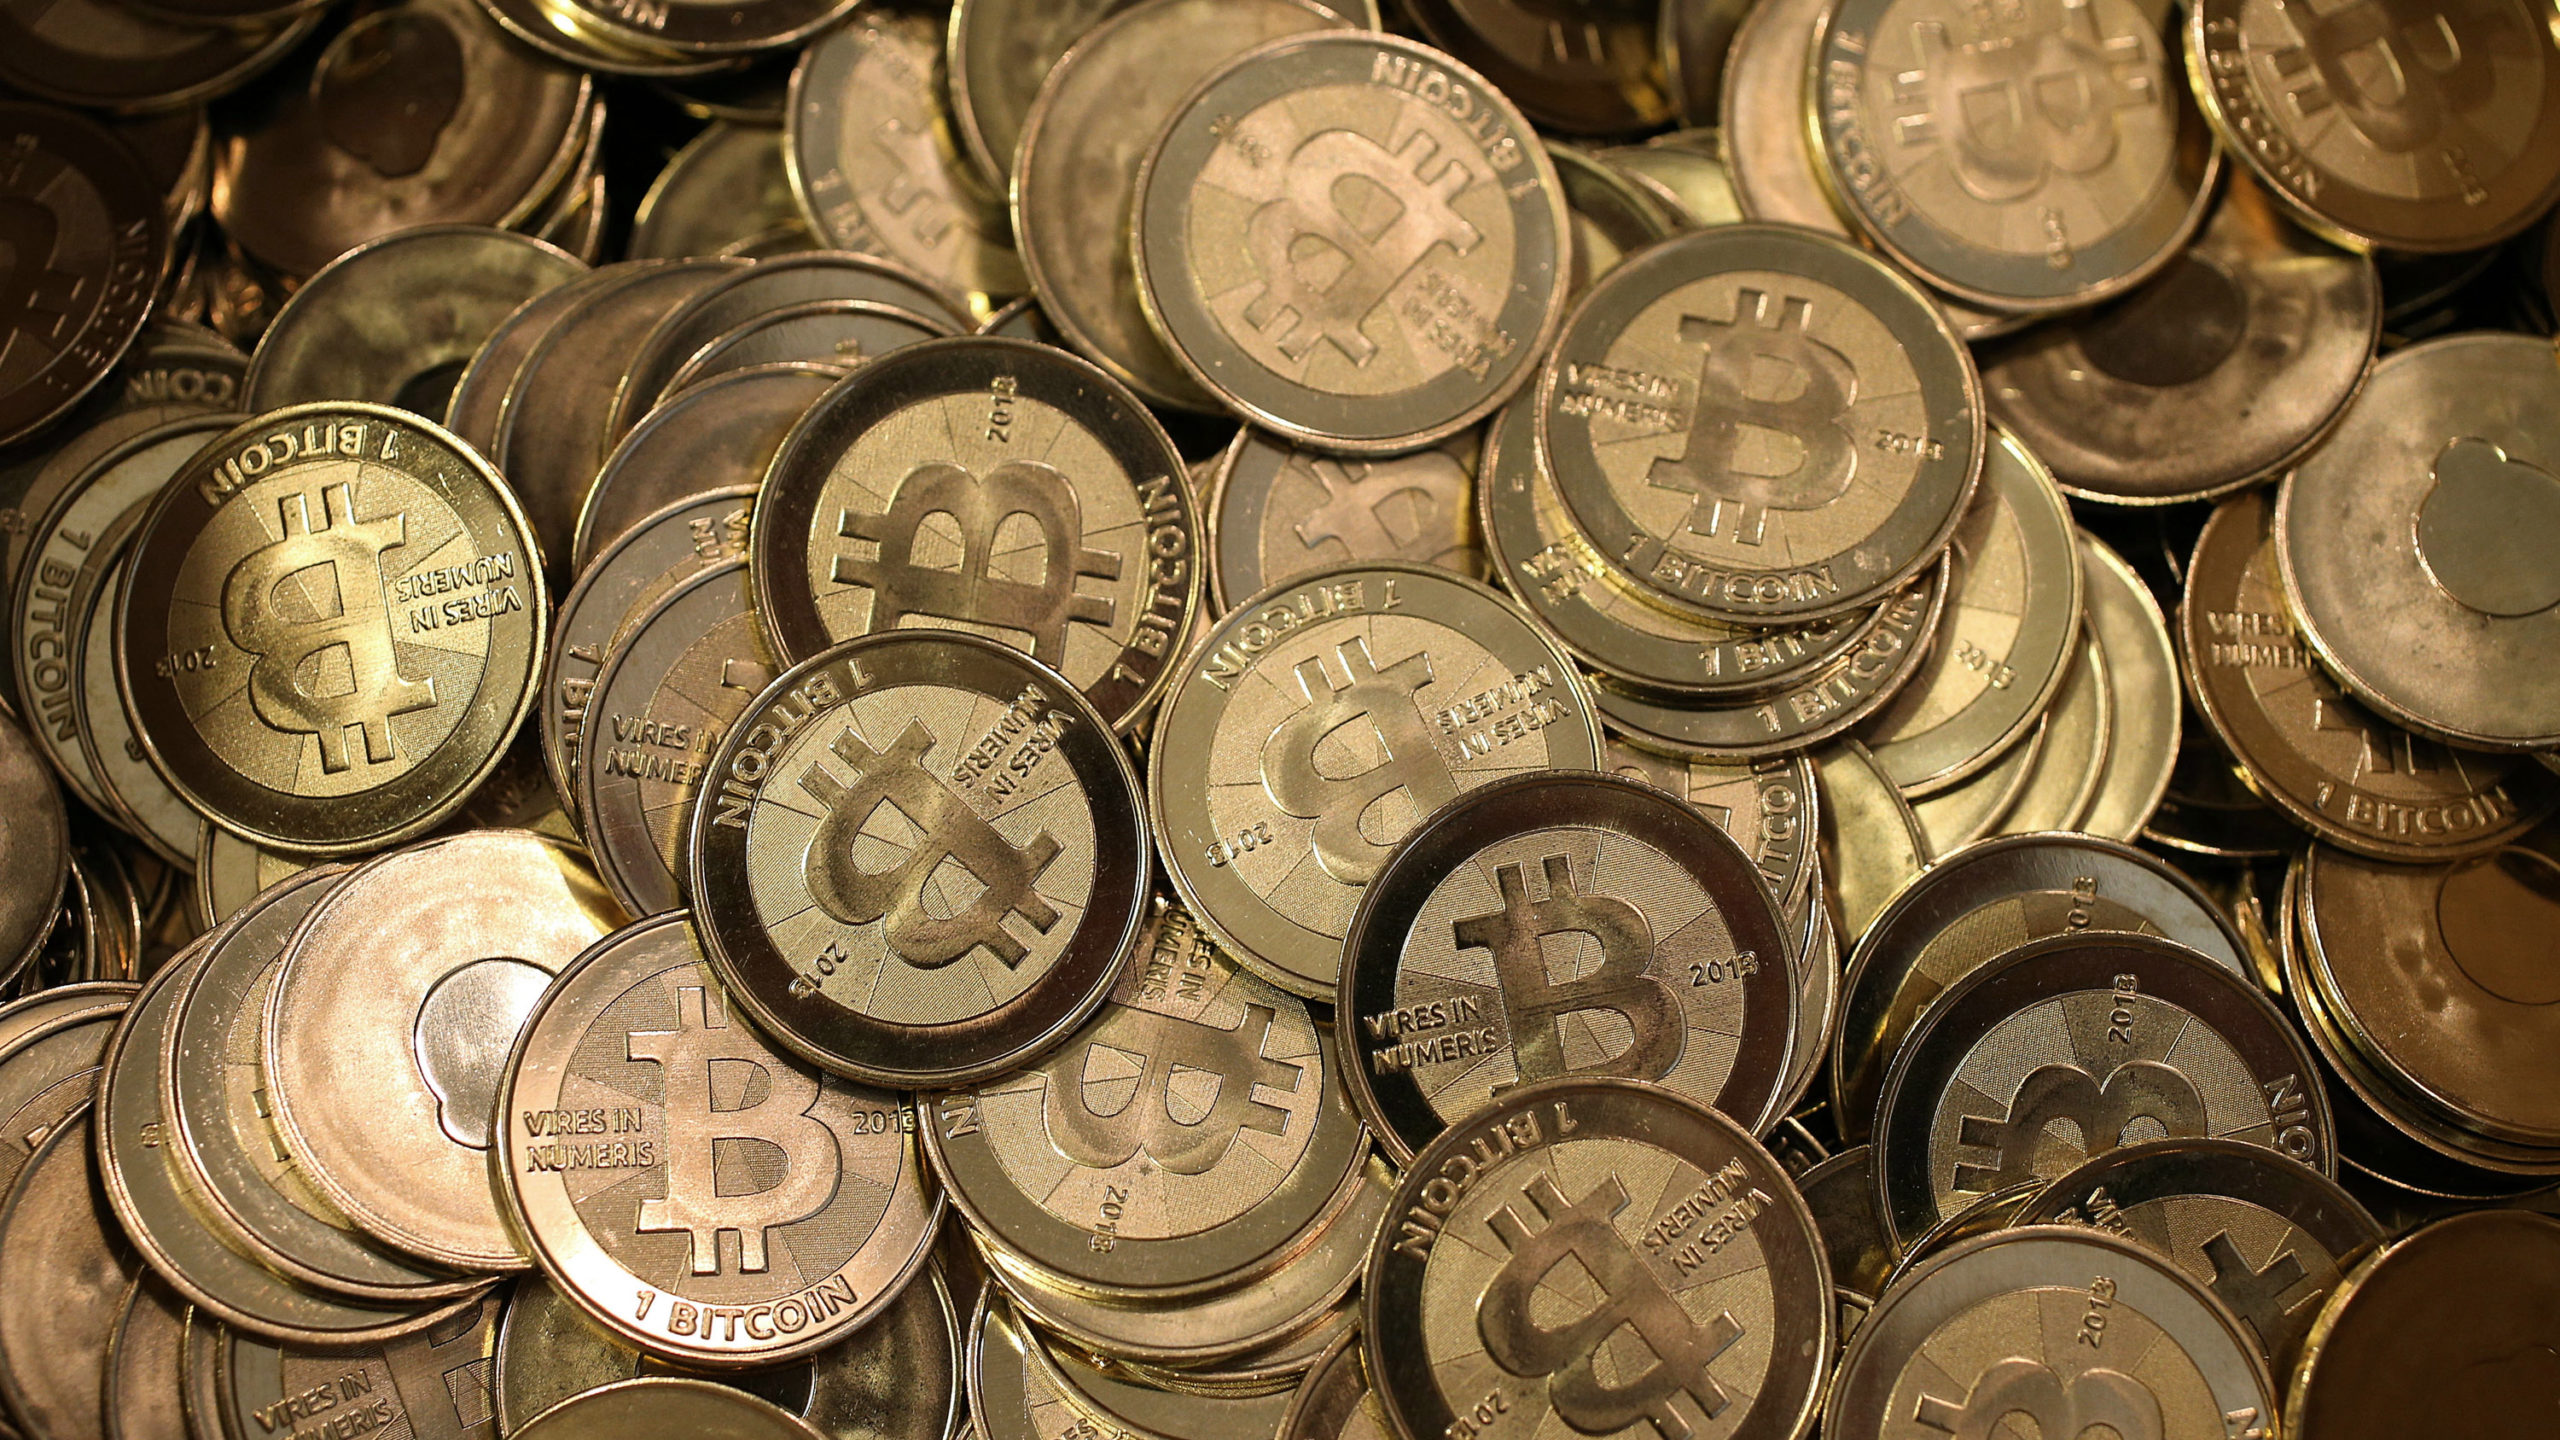 Are you new to cryptocurrency? – Get started with bitcoins